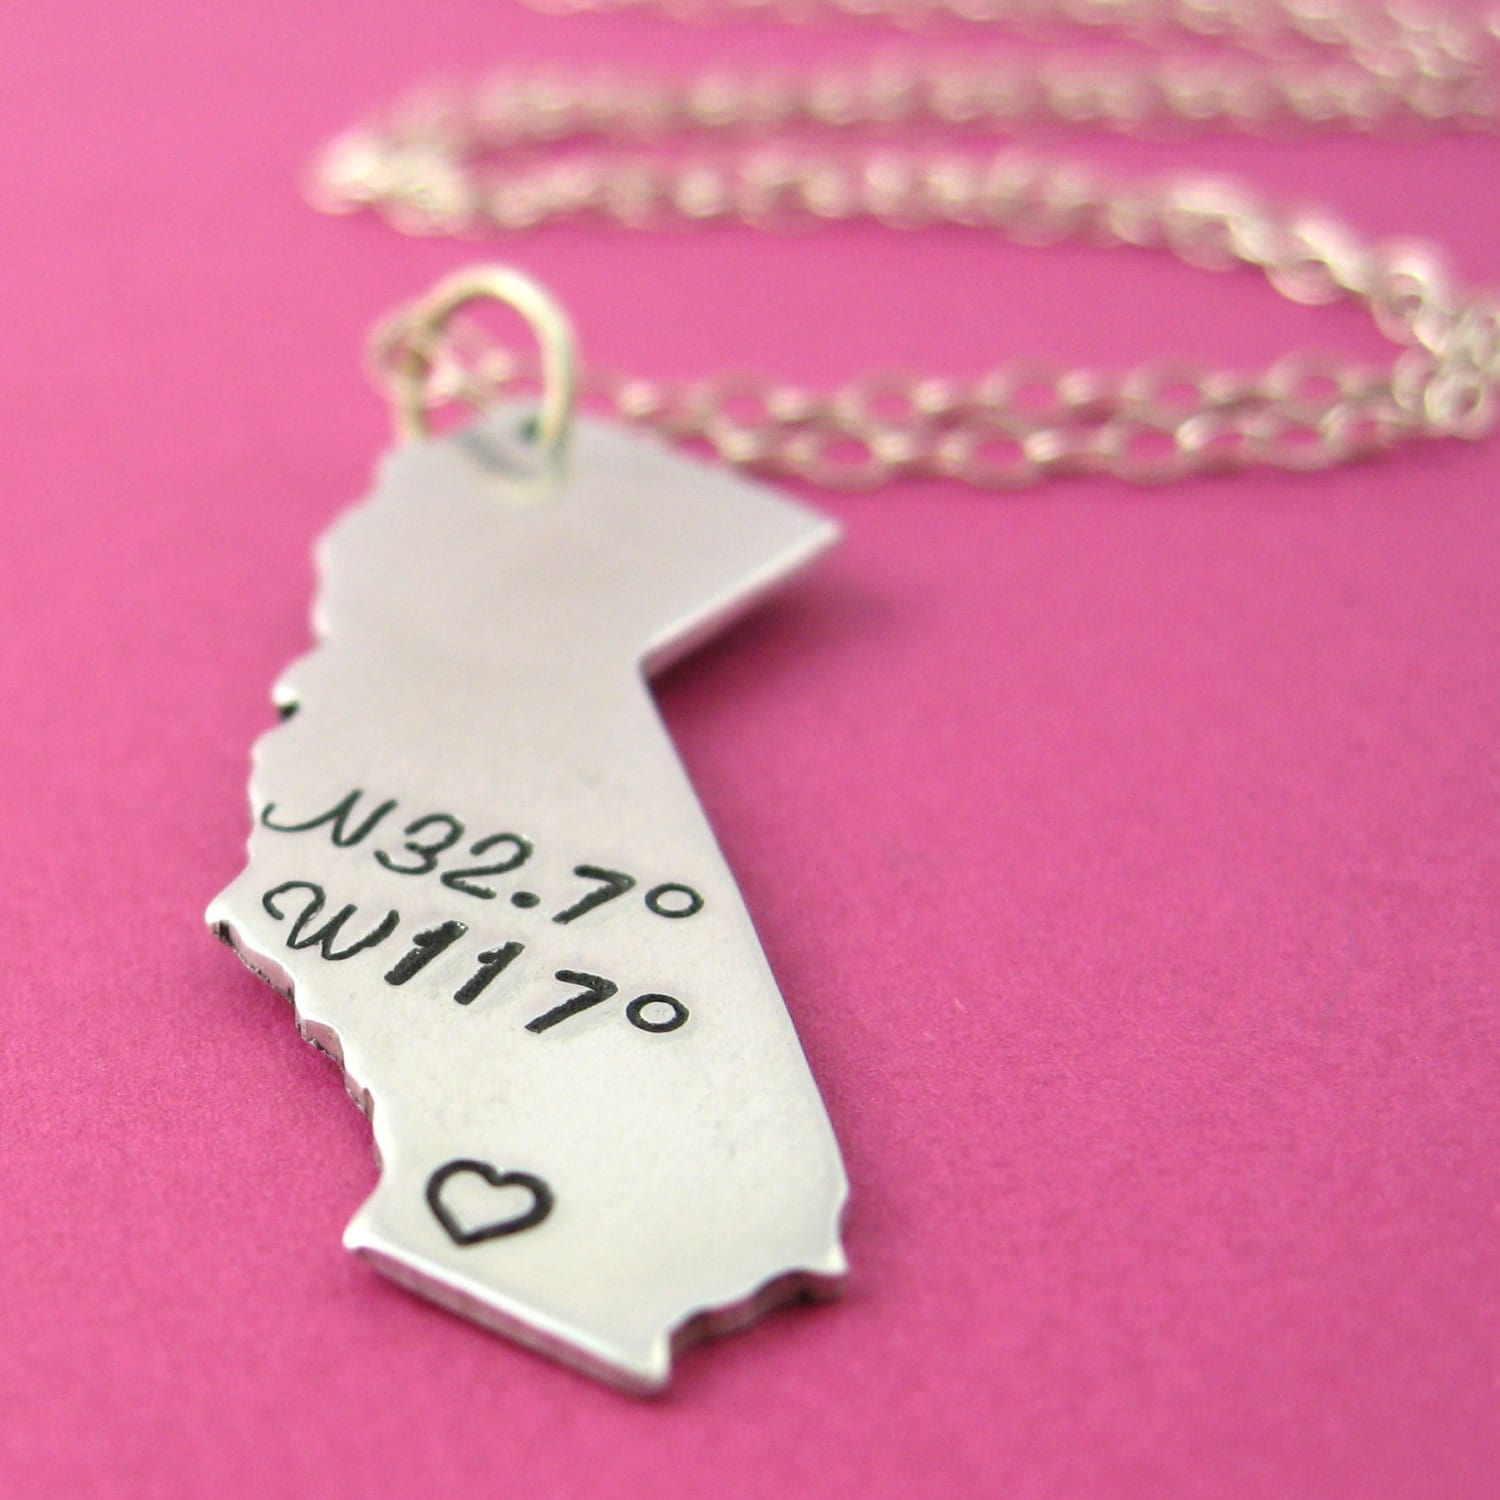 Personalized State Necklace Latitude and Longitude Coordinates Necklace - Custom State Necklace